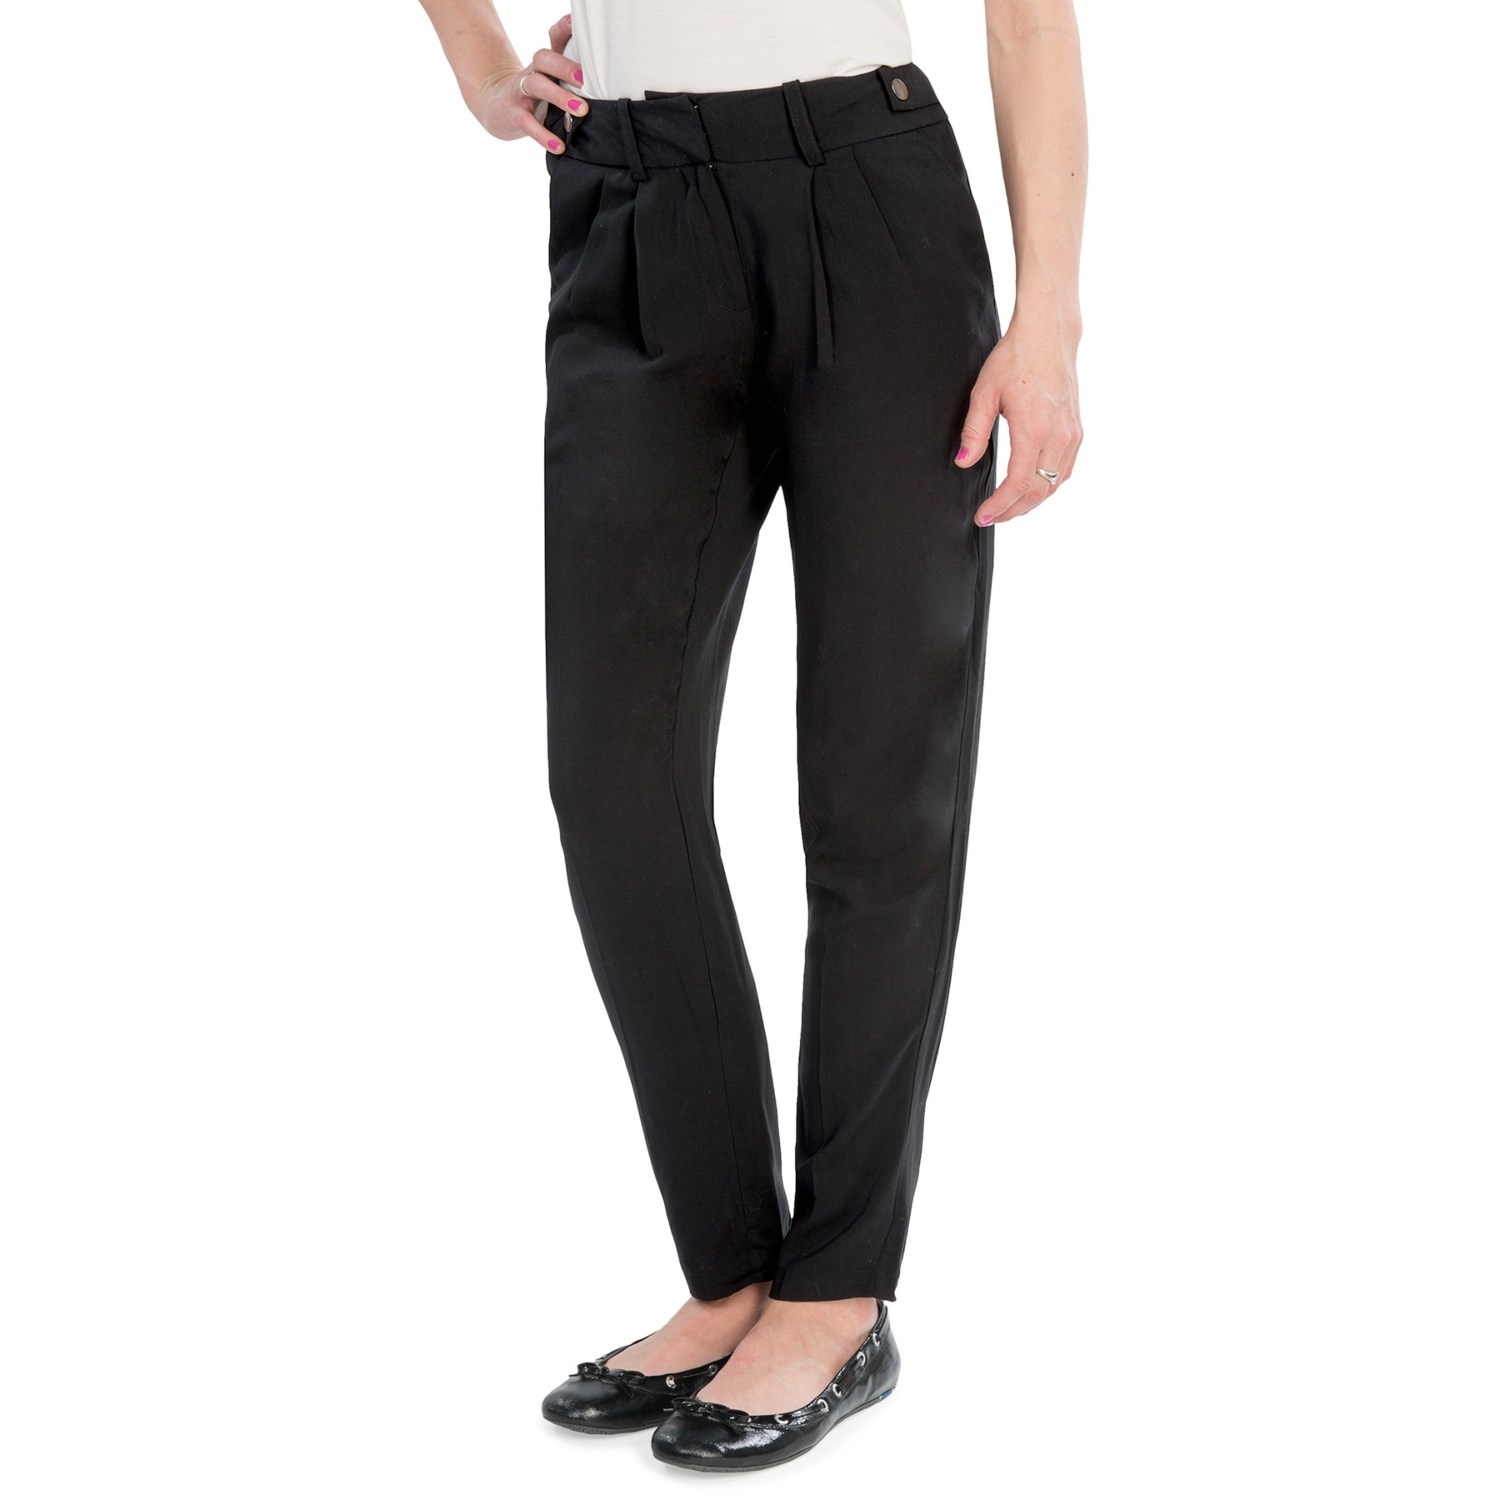 Find great deals on eBay for womens black trousers. Shop with confidence.